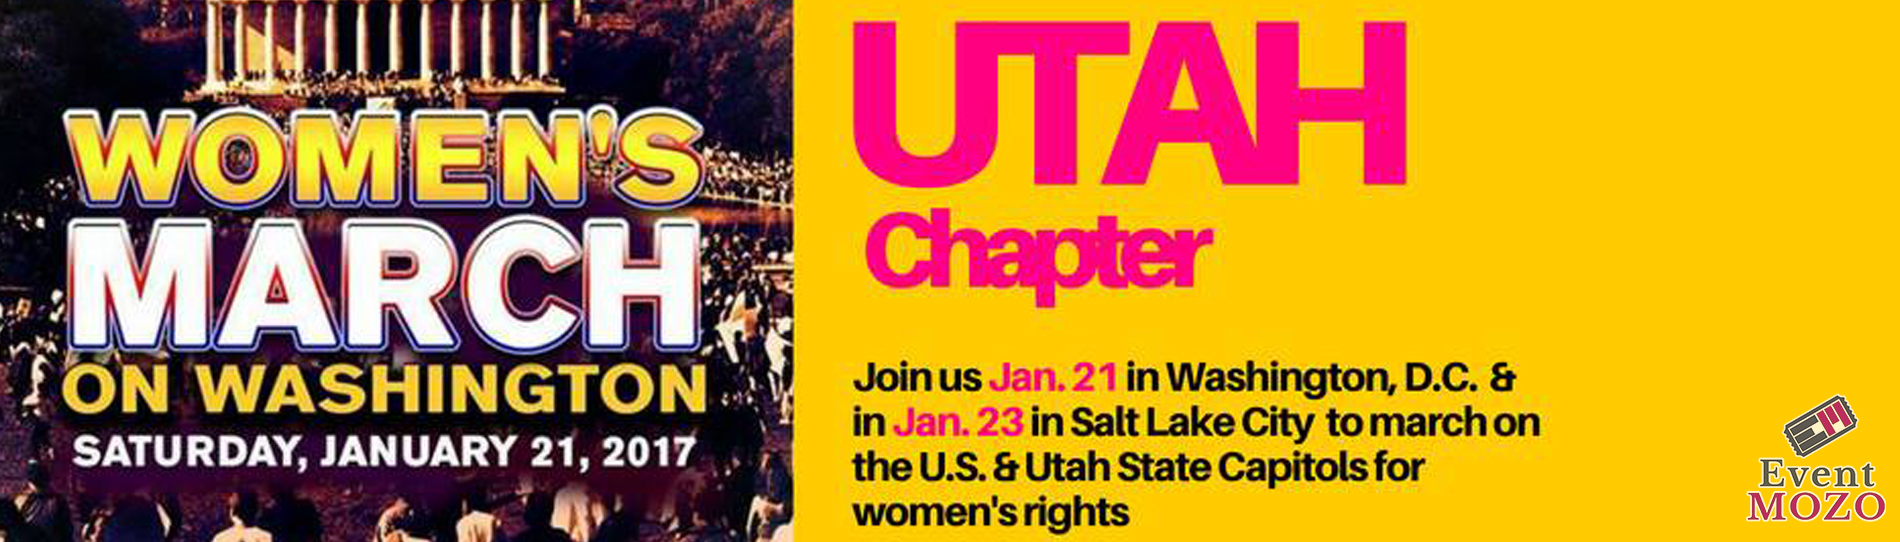 EventMozo Women's March on Washington - Utah Chapter